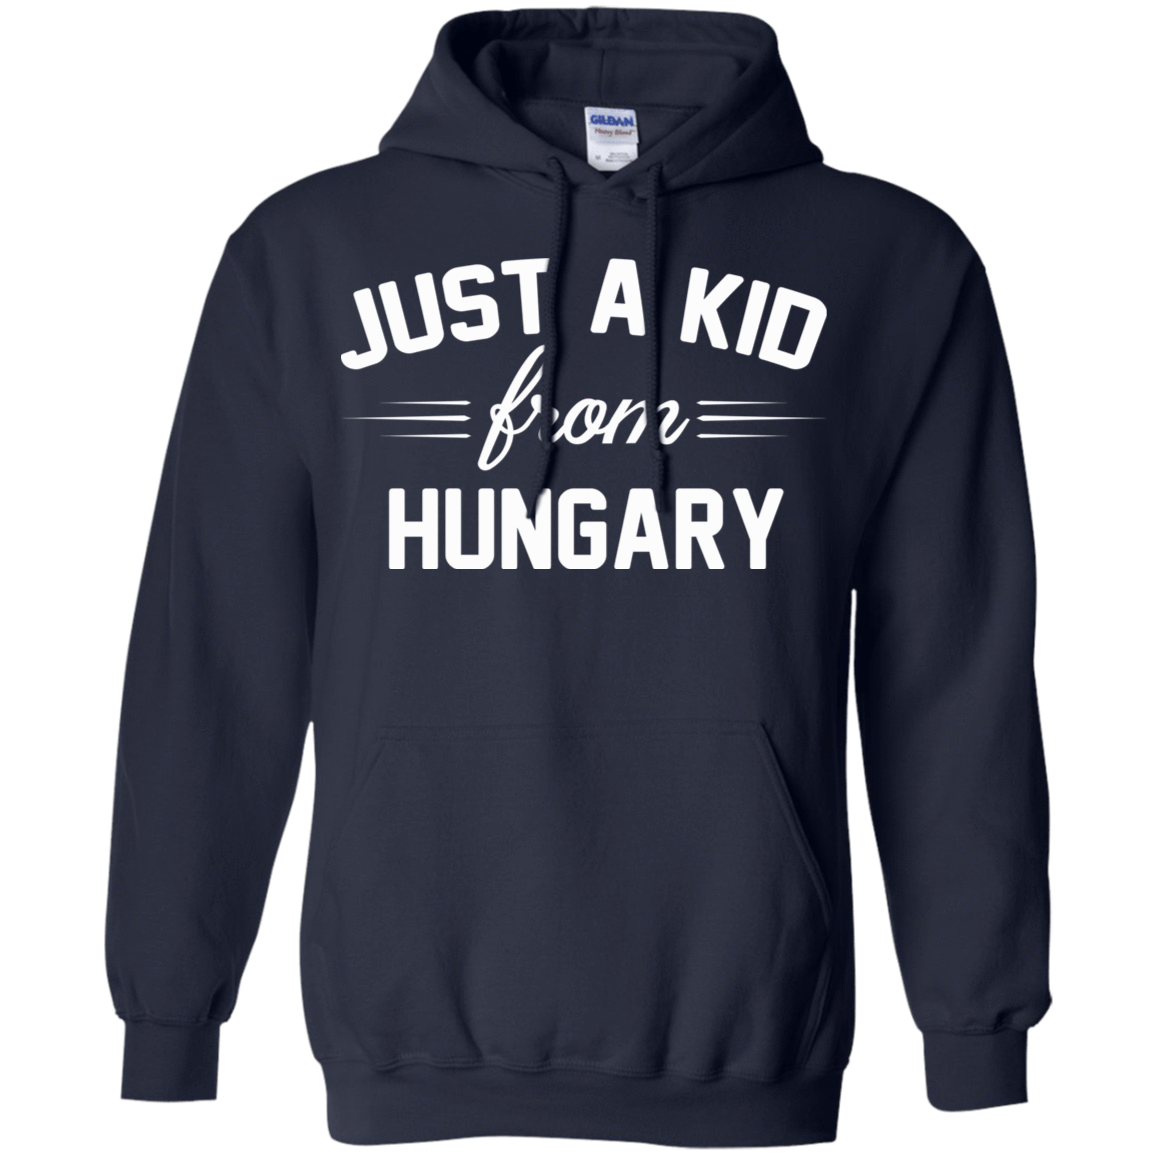 Just a Kid Store | Hungary T-Shirts, Hoodie, Tank 541-4742-72091616-23135 - Tee Ript